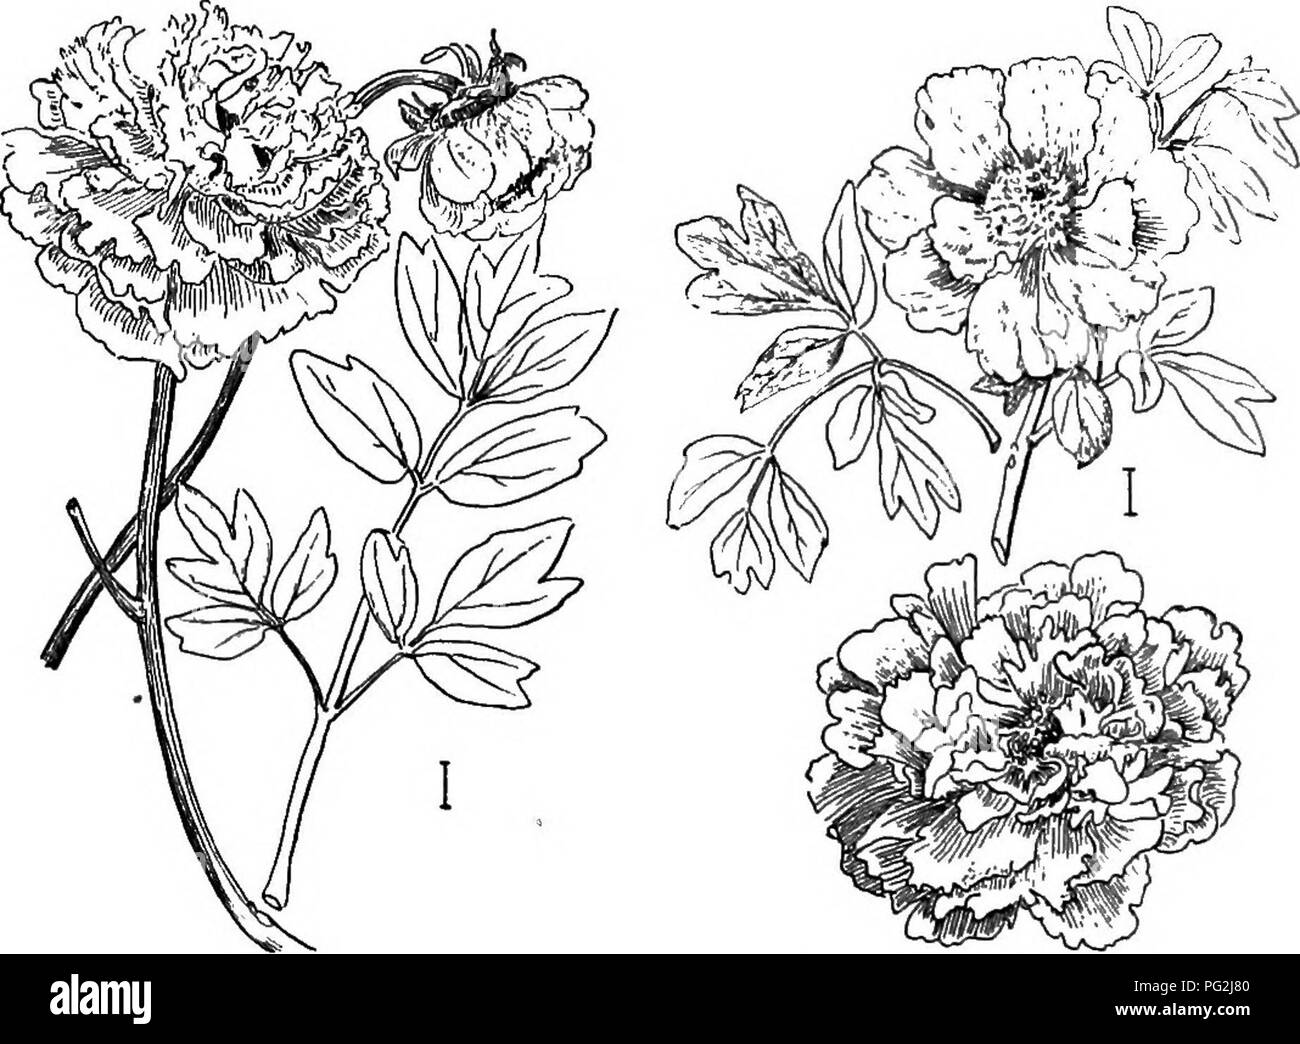 . Ornamental shrubs of the United States (hardy, cultivated). Shrubs. PART III DESCRIPTIONS OF THE SHRUBS Numbers in parenthesis in the keys and descriptions which follow refer to the figures. Bracketed information refers to methods of propagation. Paebnia. The Peonies form one of the most popular groups of plants. They are almost entirely large-ilowered herbaceous perennials, though one species is shrubby and, therefore, to be included in our book. This is called Tkee Peonv Figs. (1) and (2) — Paeonia Moutdn, — growing to the. Fig. 1. —Tree Peony. Fig. 2.—Tree Peony. height of 3 to 8 feet wit - Stock Image